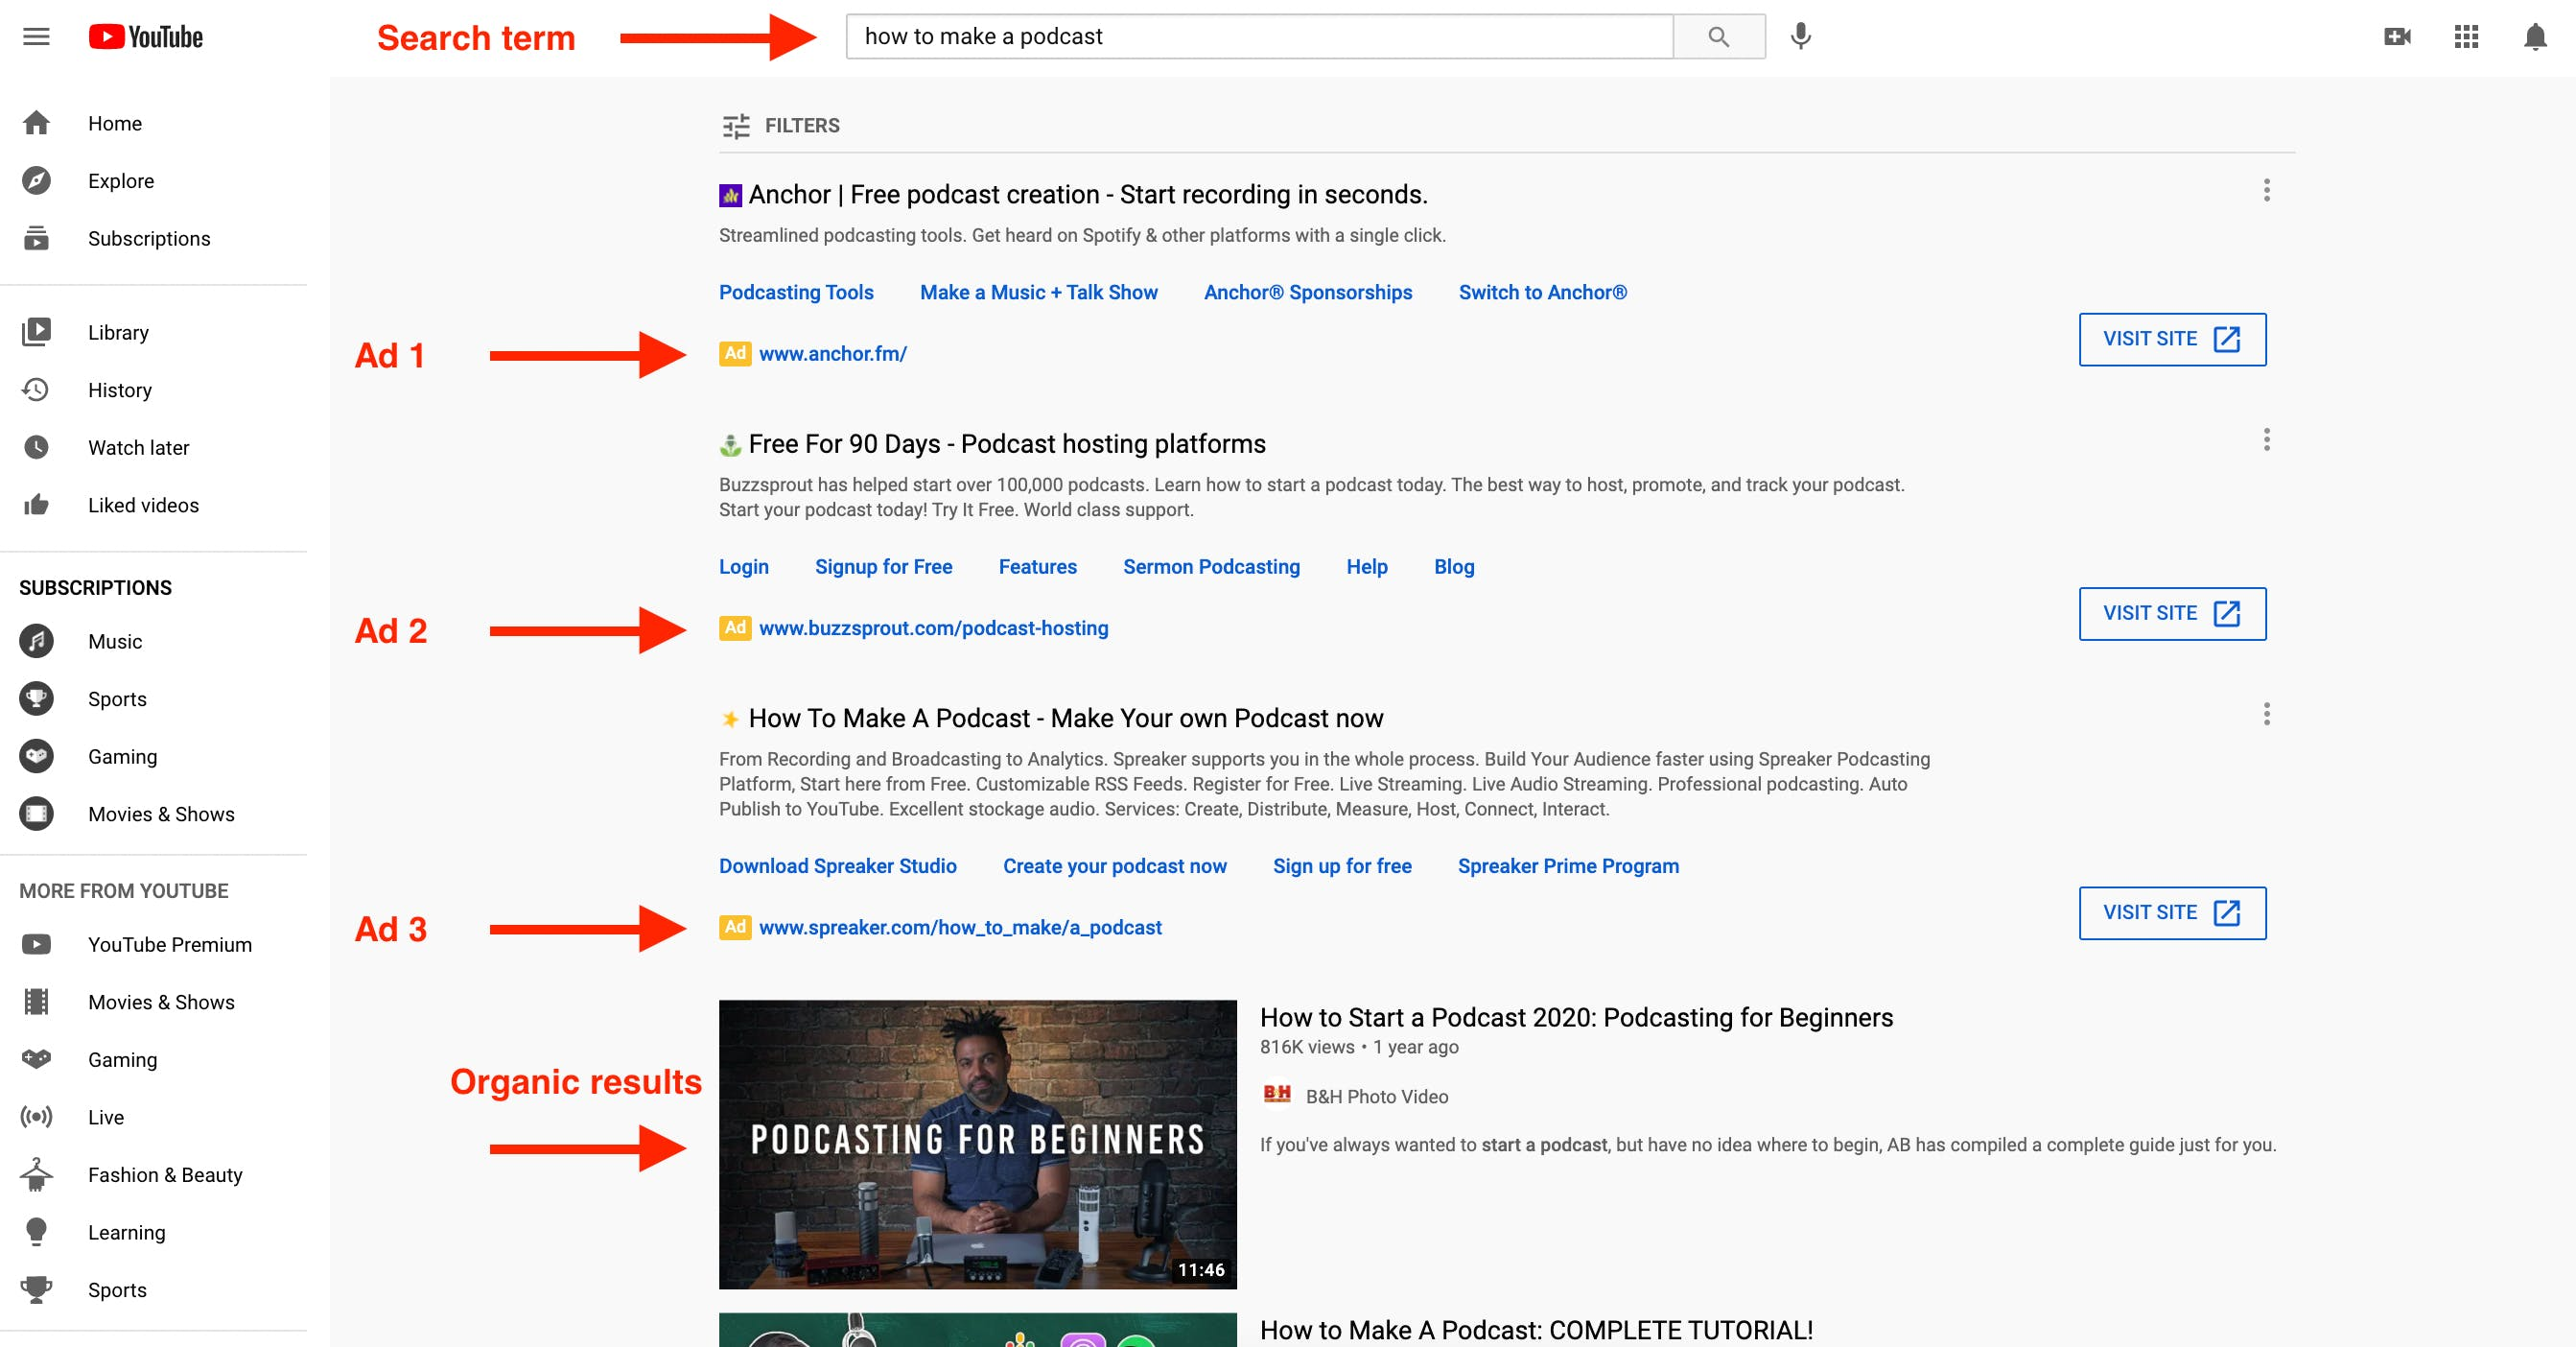 Example of Non video YouTube ads showing multiple ads showing before the organic video results